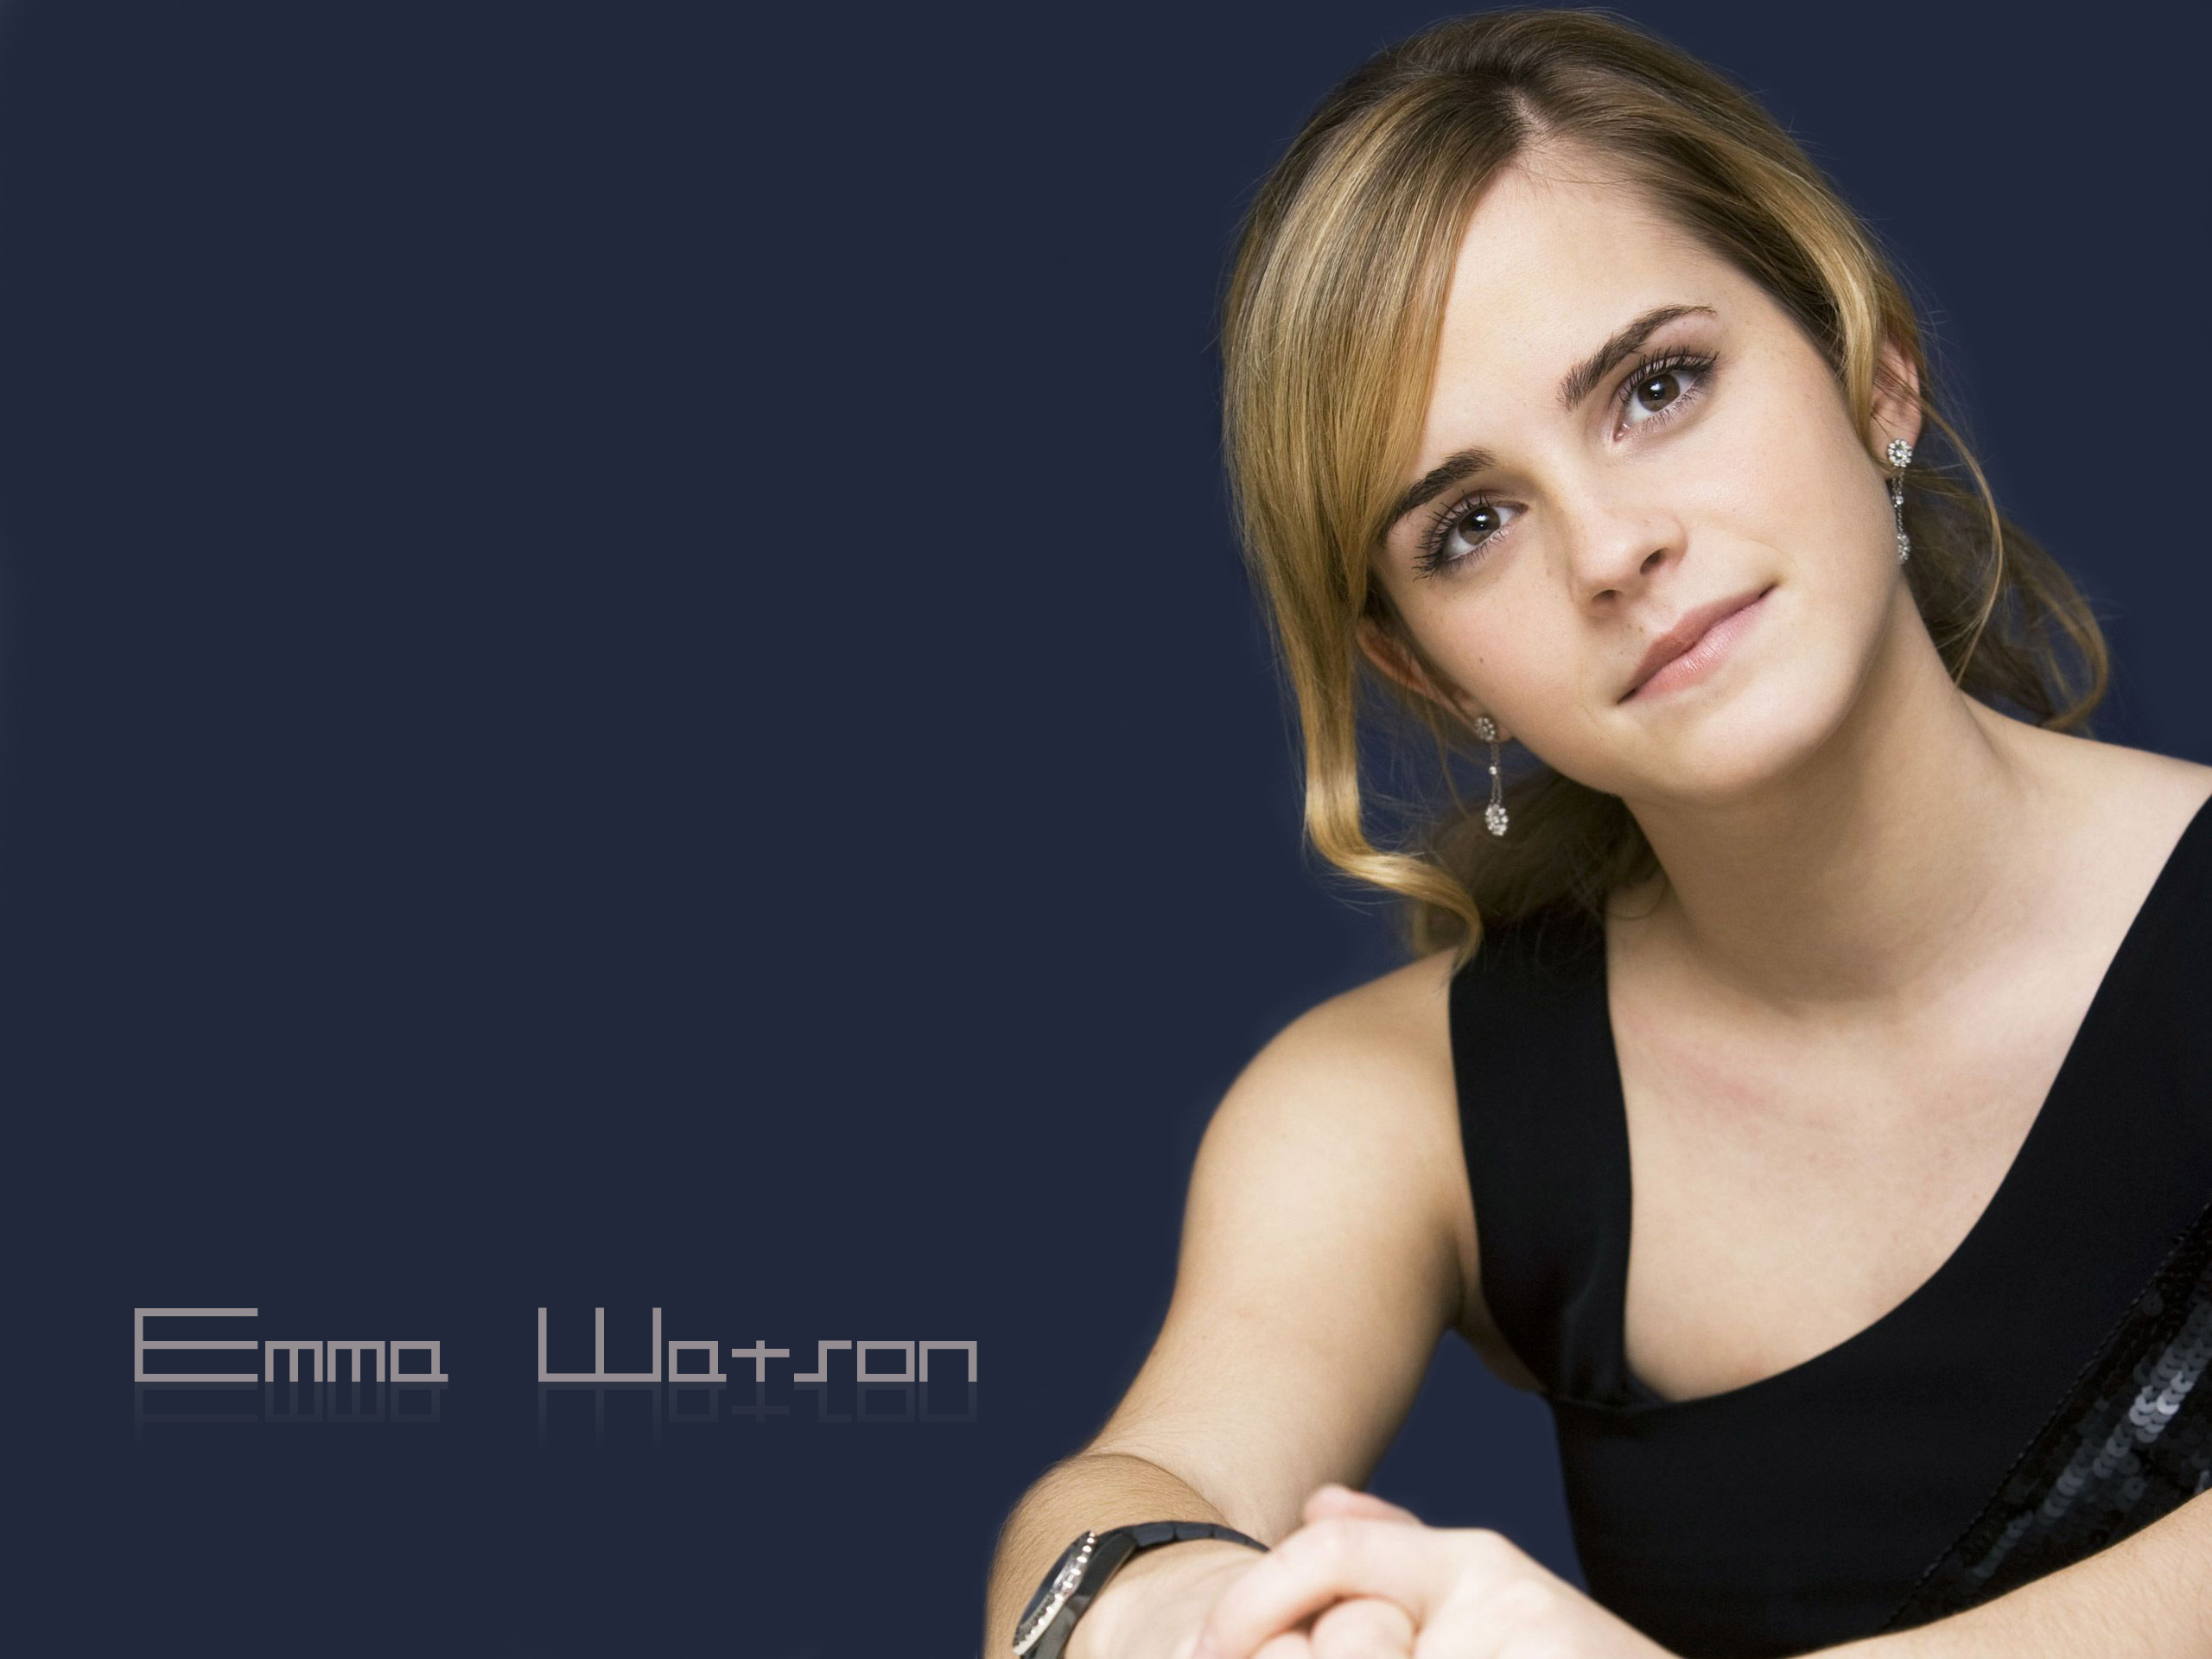 Hd wallpaper ladies - Emma Watson The Gorgeous Lady Wallpapers Hd Wallpapers